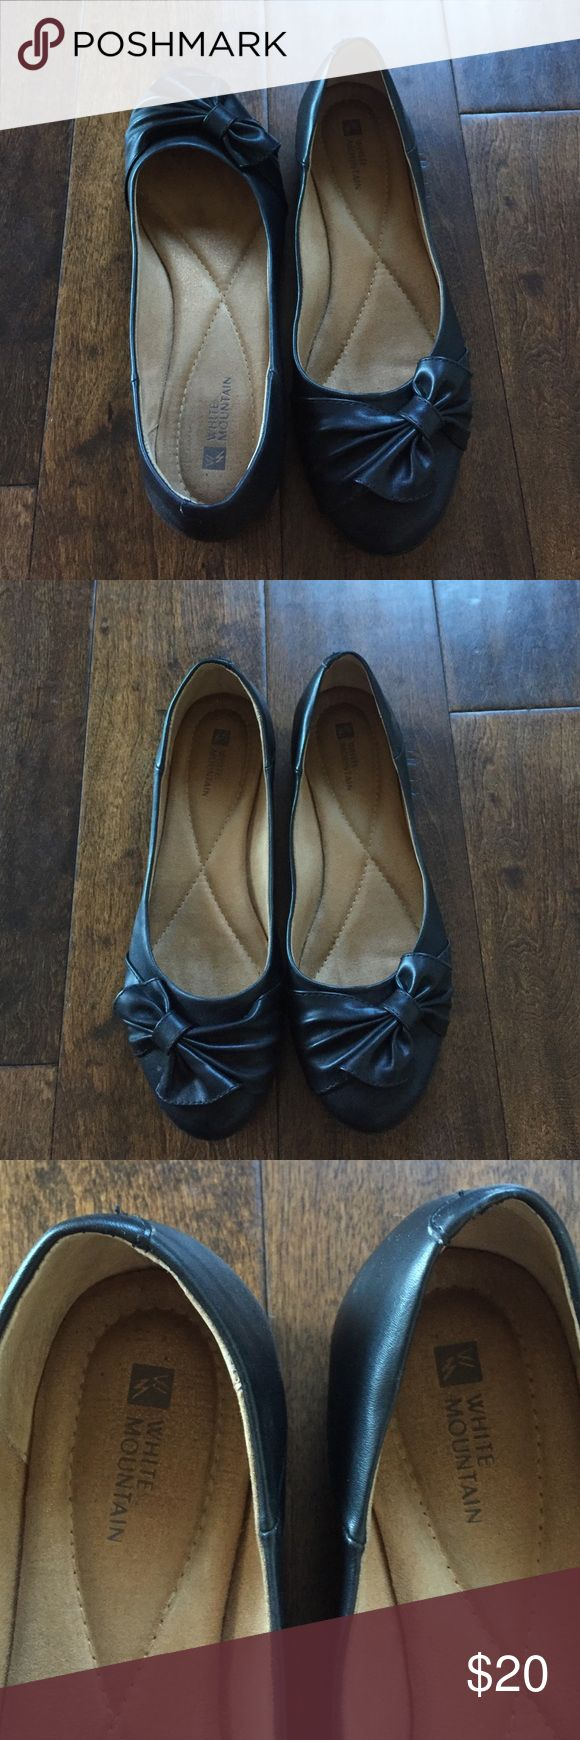 Black bow flats Very cute and super comfortable black flats with bow accent by White Mountain worn only a few times. Padded bottom for extra comfort. Size 9. White Mountain Shoes Flats & Loafers